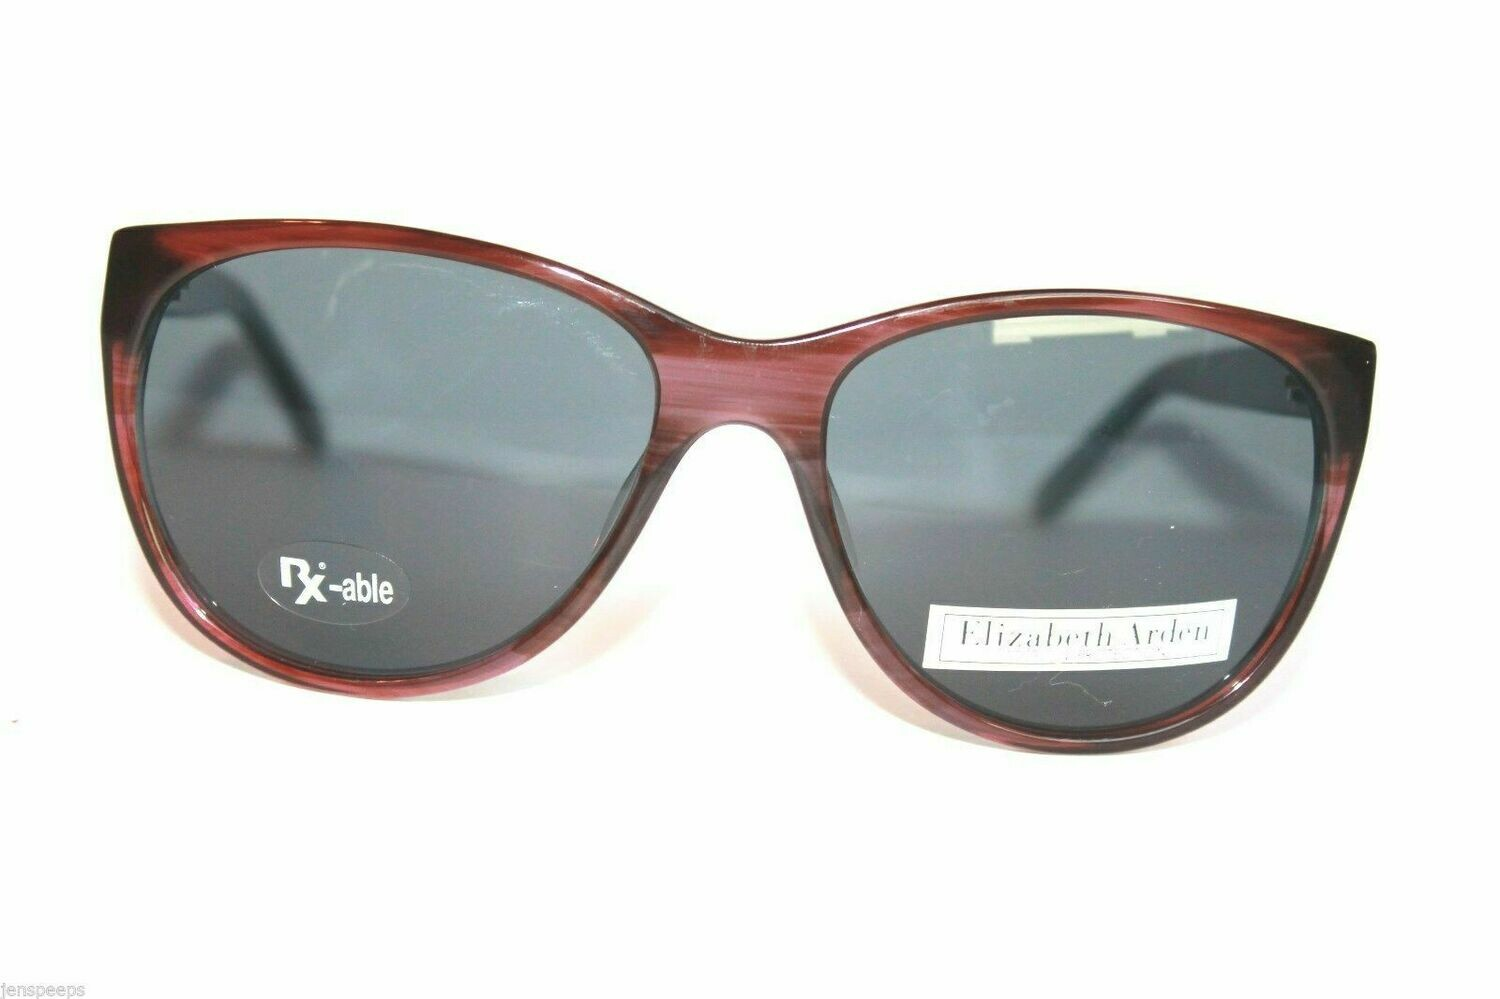 Authentic New Elizabeth Arden 5186 Sunglasses in Purple Horn Sunwear